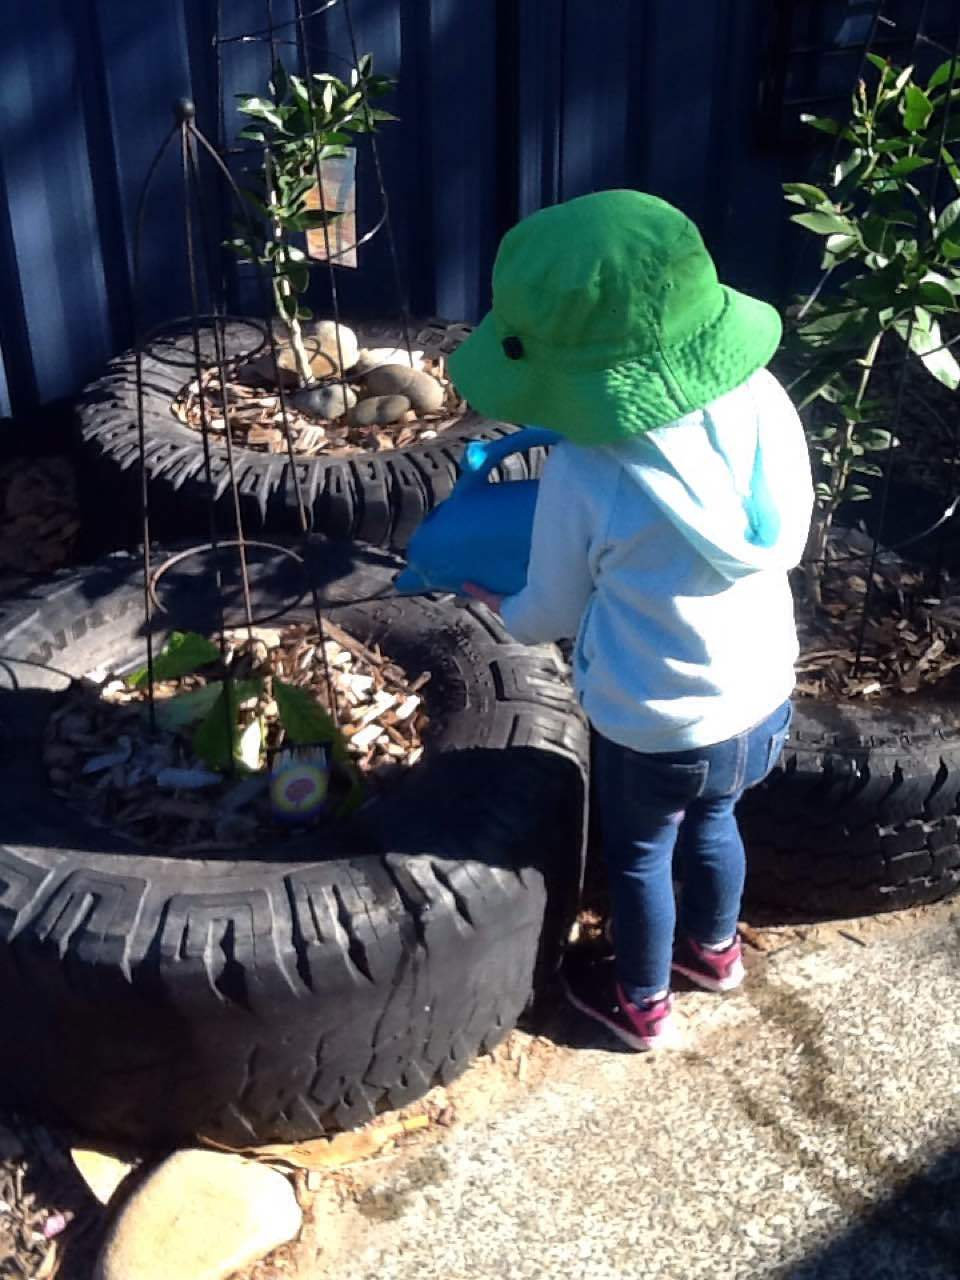 The children all help to look after our garden and our veggie garden. Darcy here is using one of the watering cans to take special care of the new plants that have gone in.